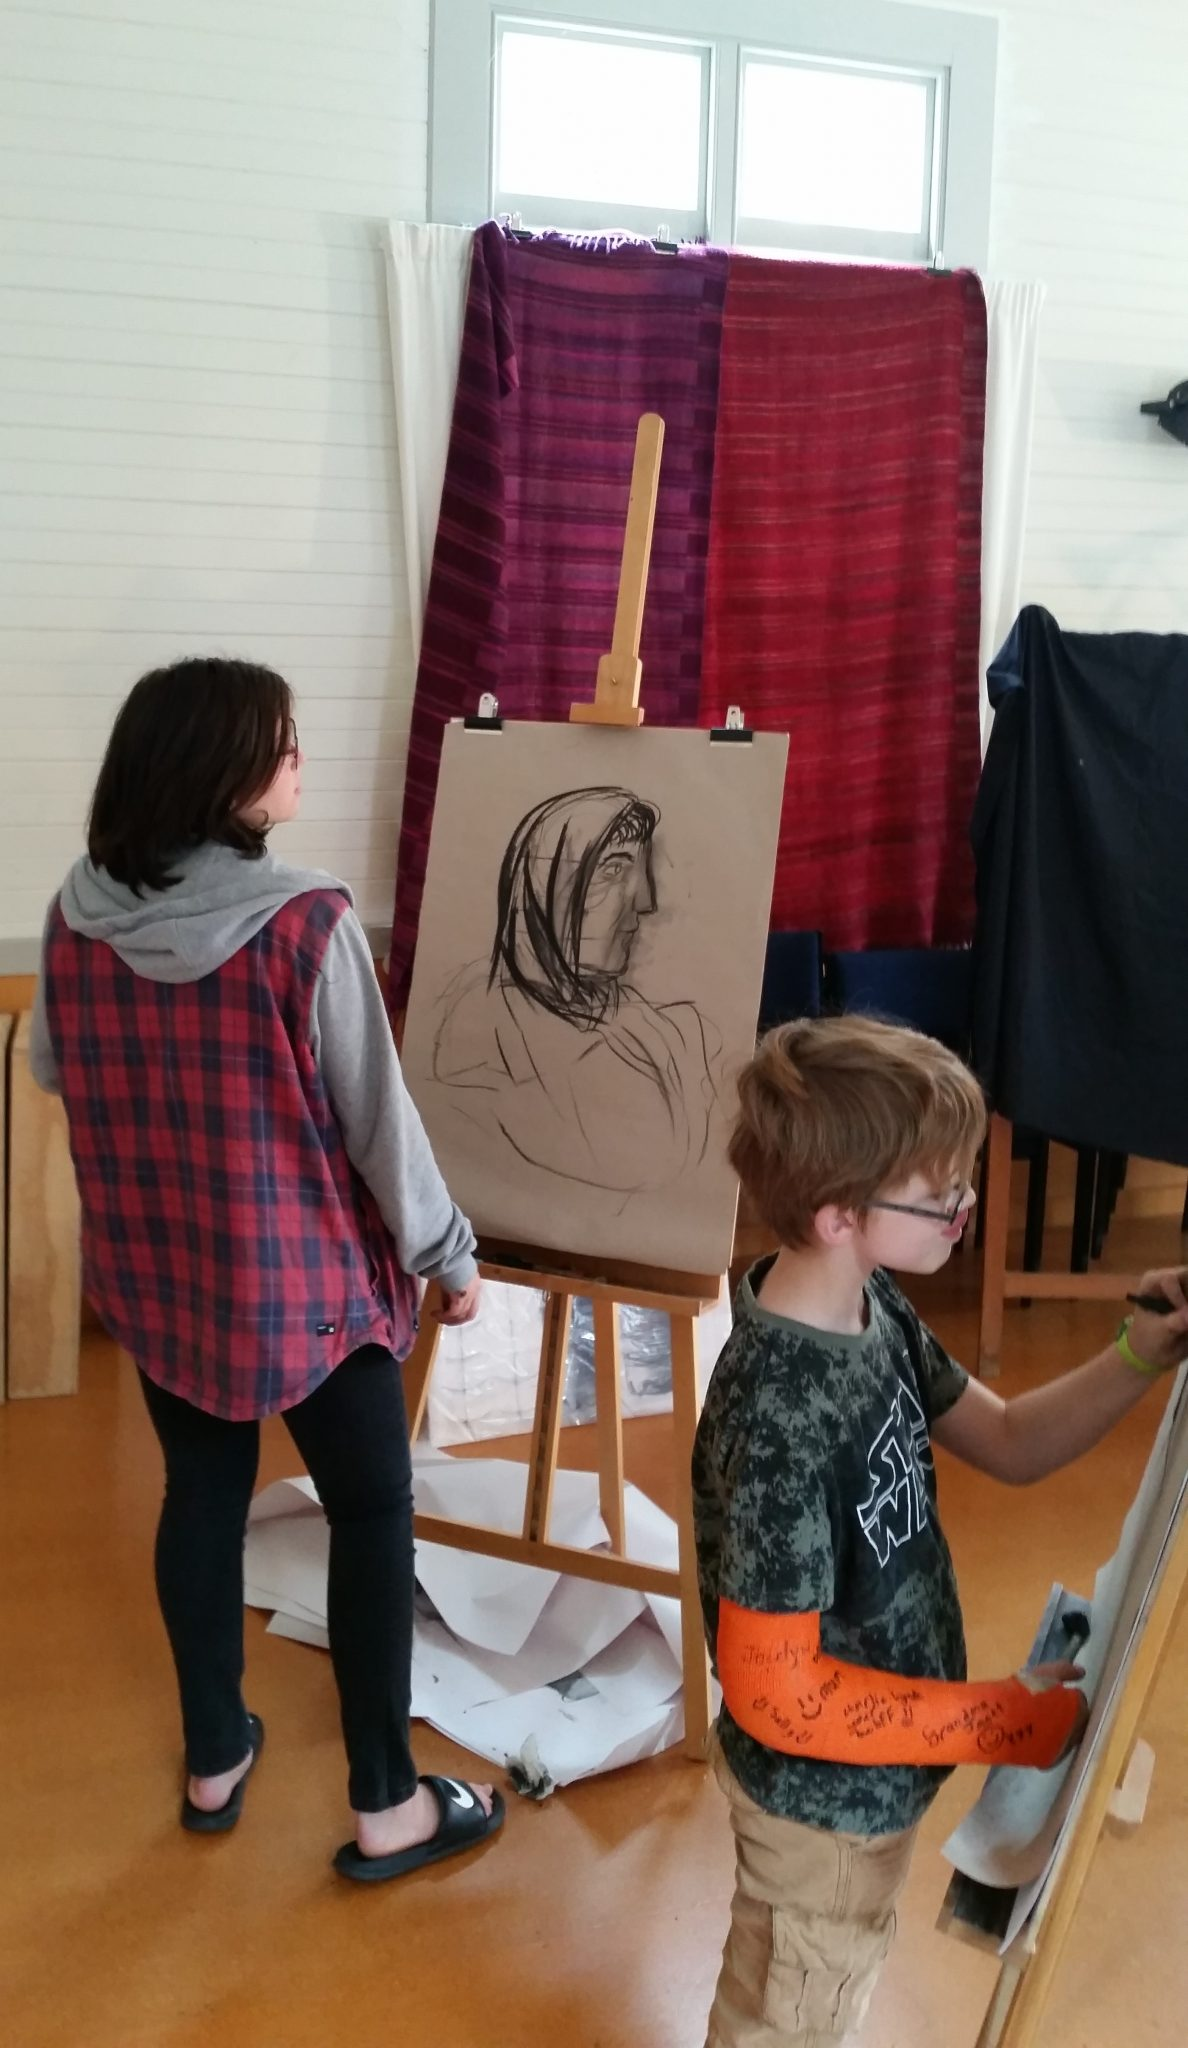 Easel-ly Arty 2 – Charlotte Stockman and Curtis Johnson